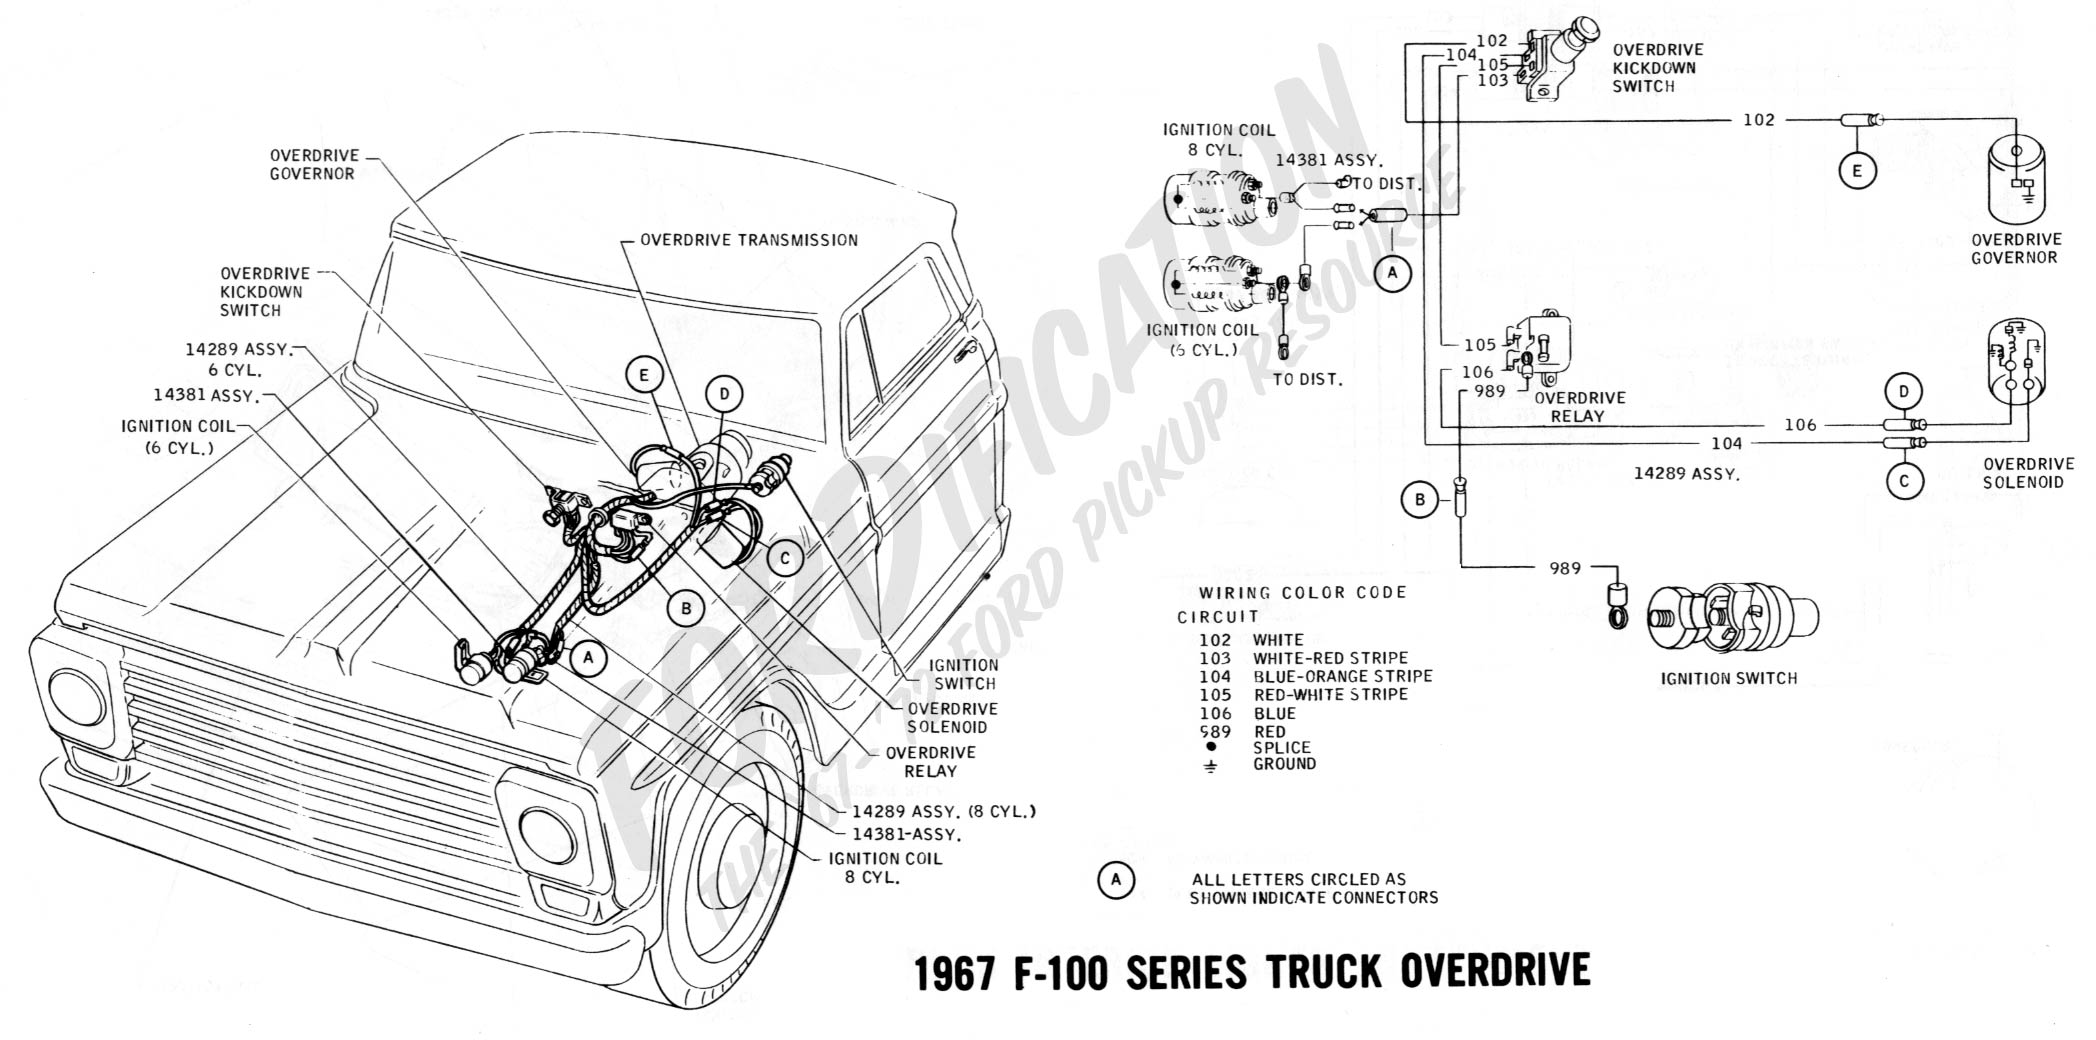 interior fuse box diagram for 99 ford f 250 v1 0 wiring library rh 52 informaticaonlinetraining co